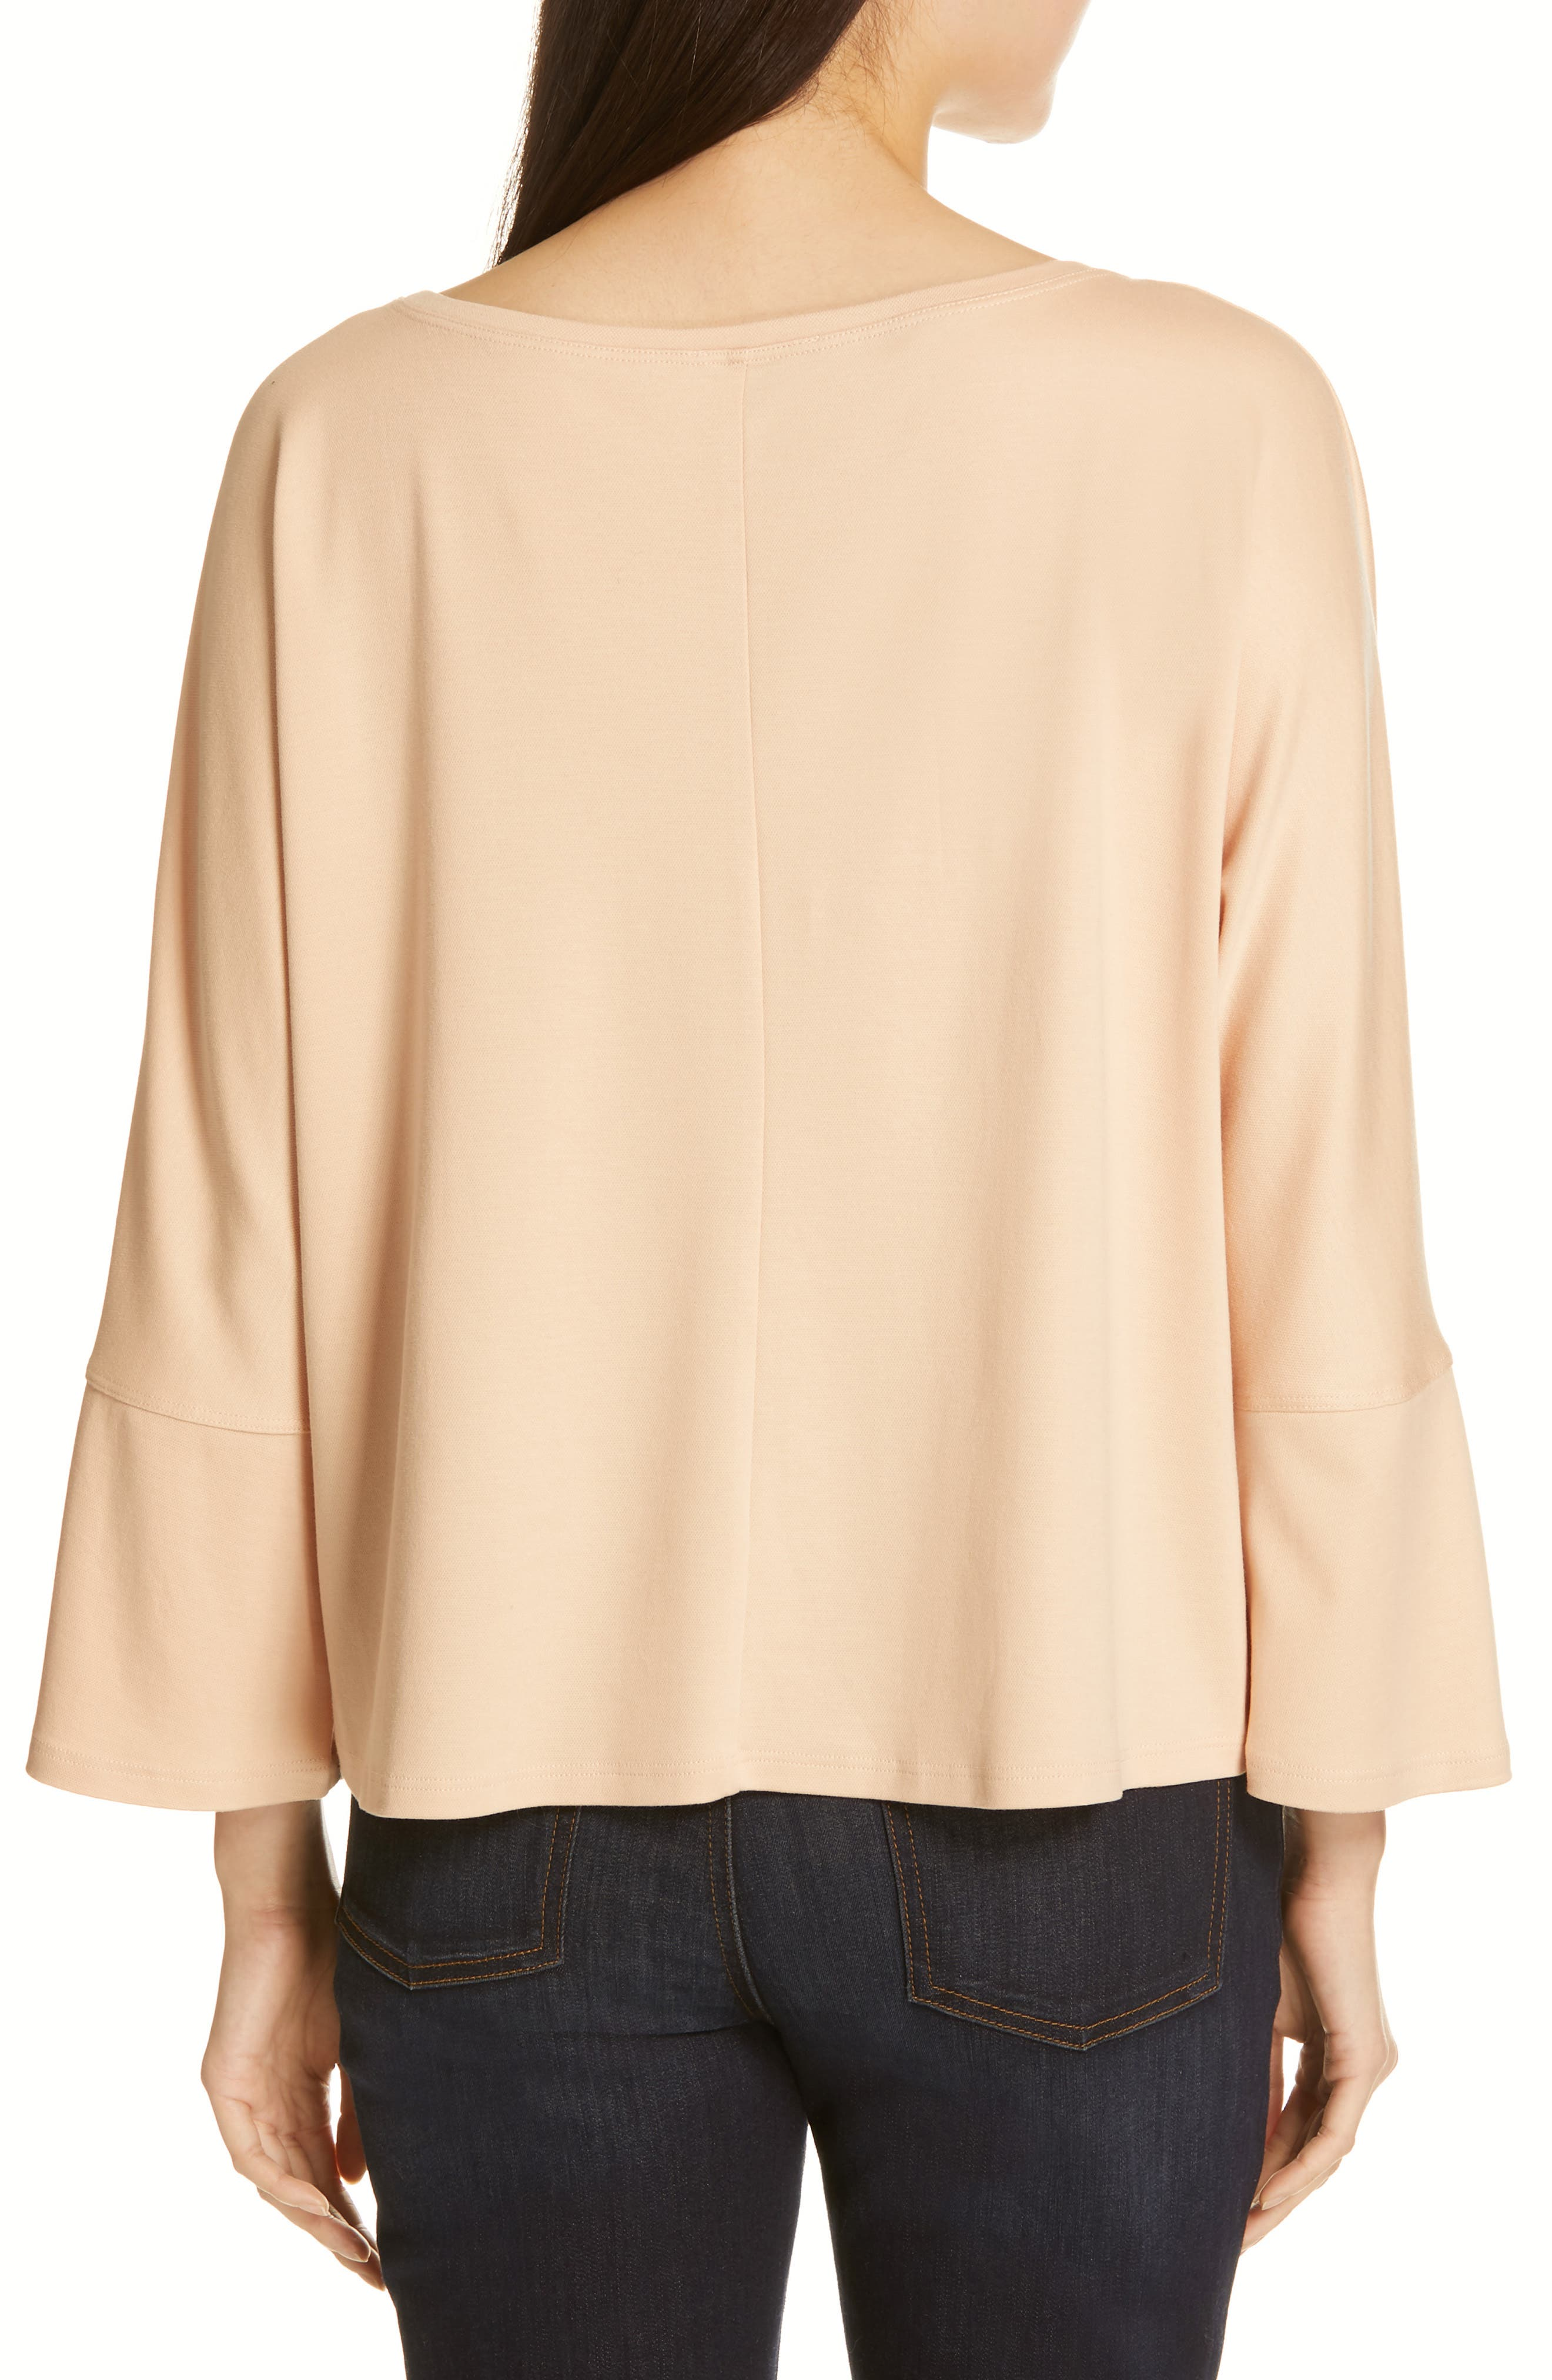 EILEEN FISHER, Bell Sleeve Top, Alternate thumbnail 2, color, ROSE WATER